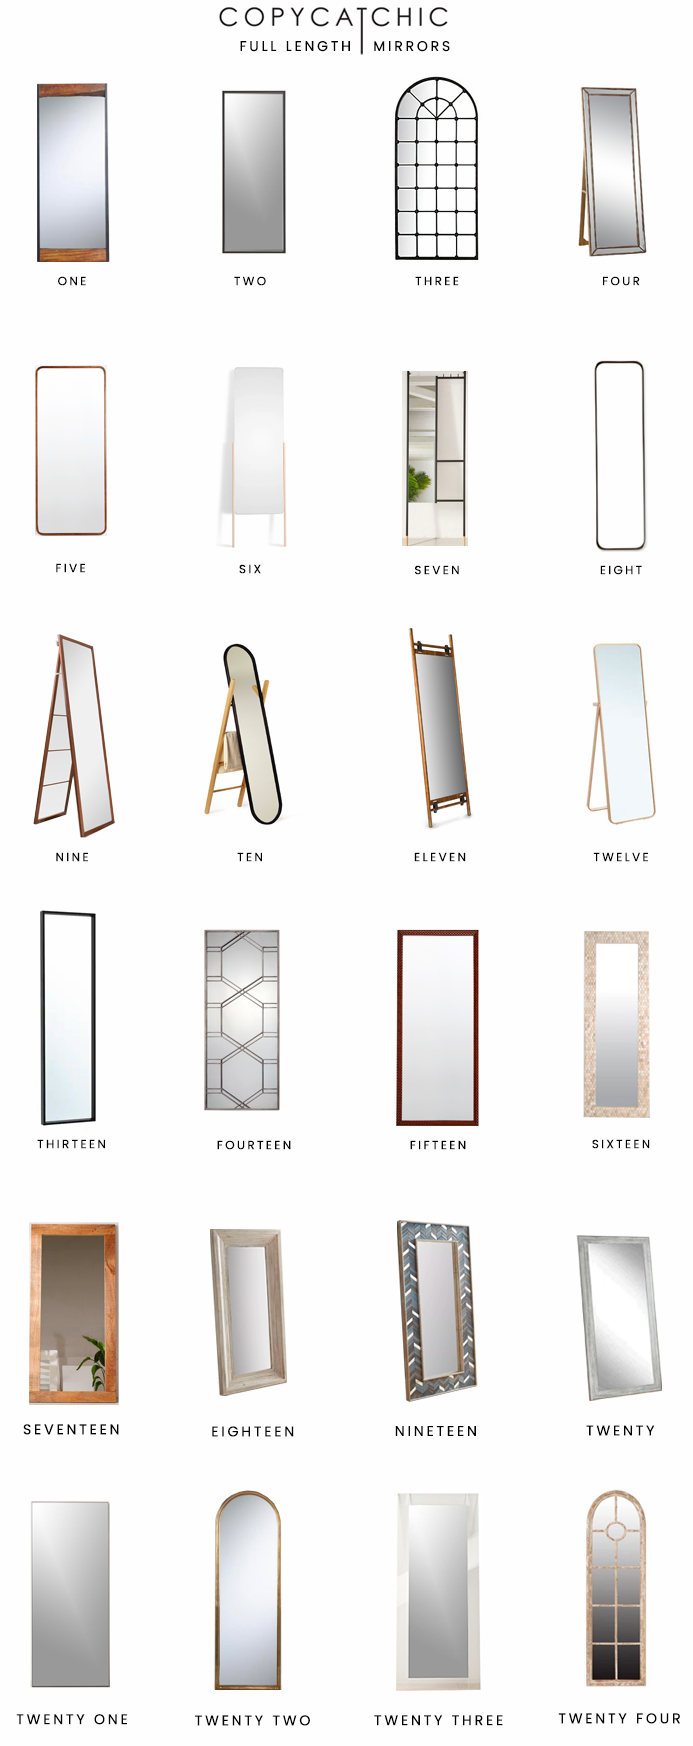 full length mirrors look for less, floor mirrors look for less, leaner mirrors look for less, copycatchic luxe living for less, budget home decor and design, daily finds, home trends, sales, budget travel and room redos